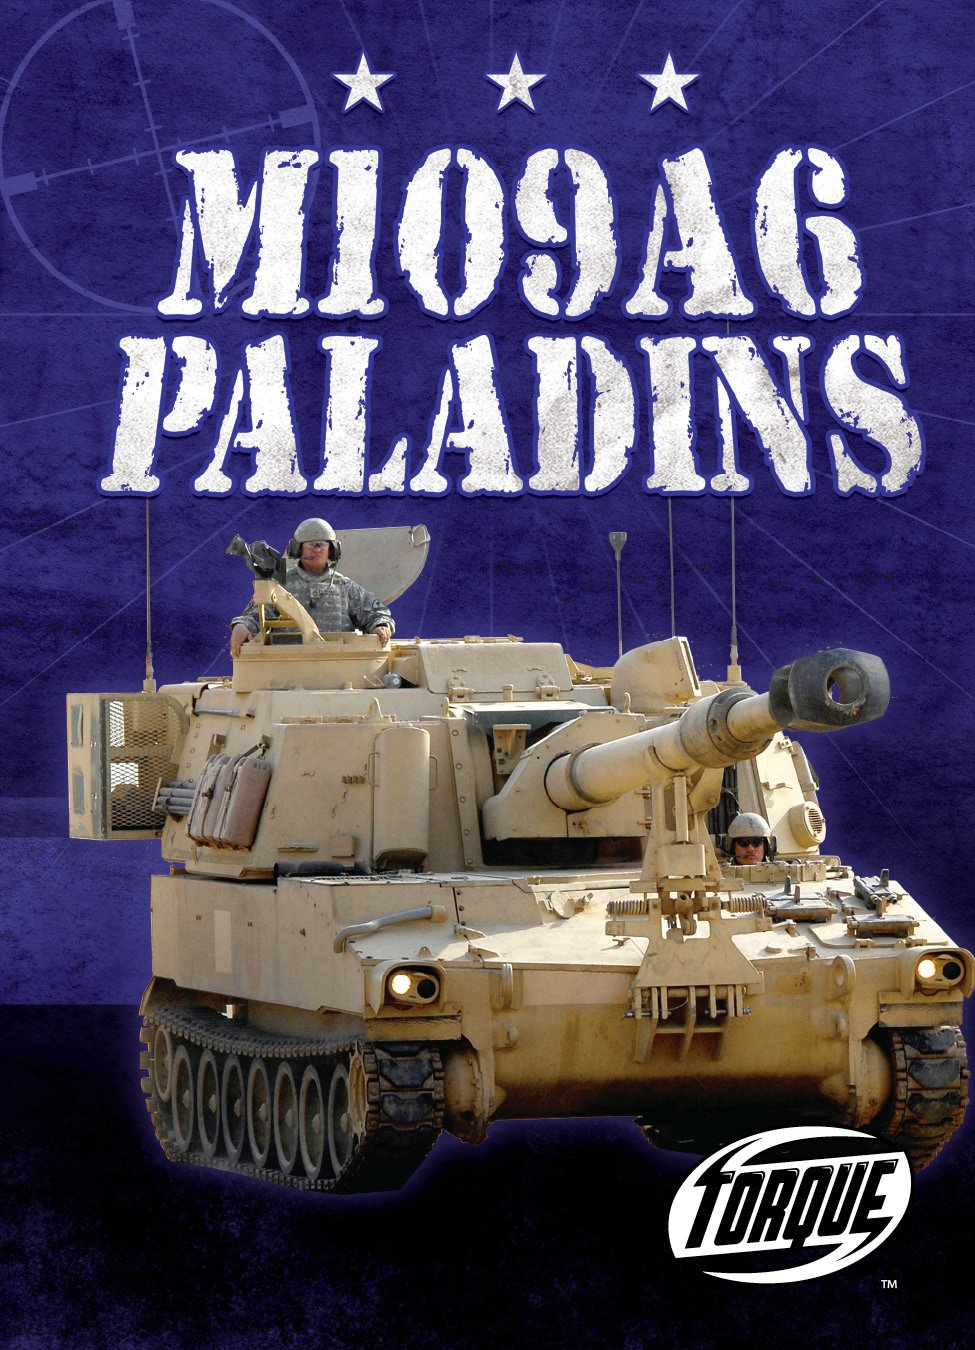 Download M109A6 Paladins (Torque Books: Military Machines) (Torque: Military Machines) ebook